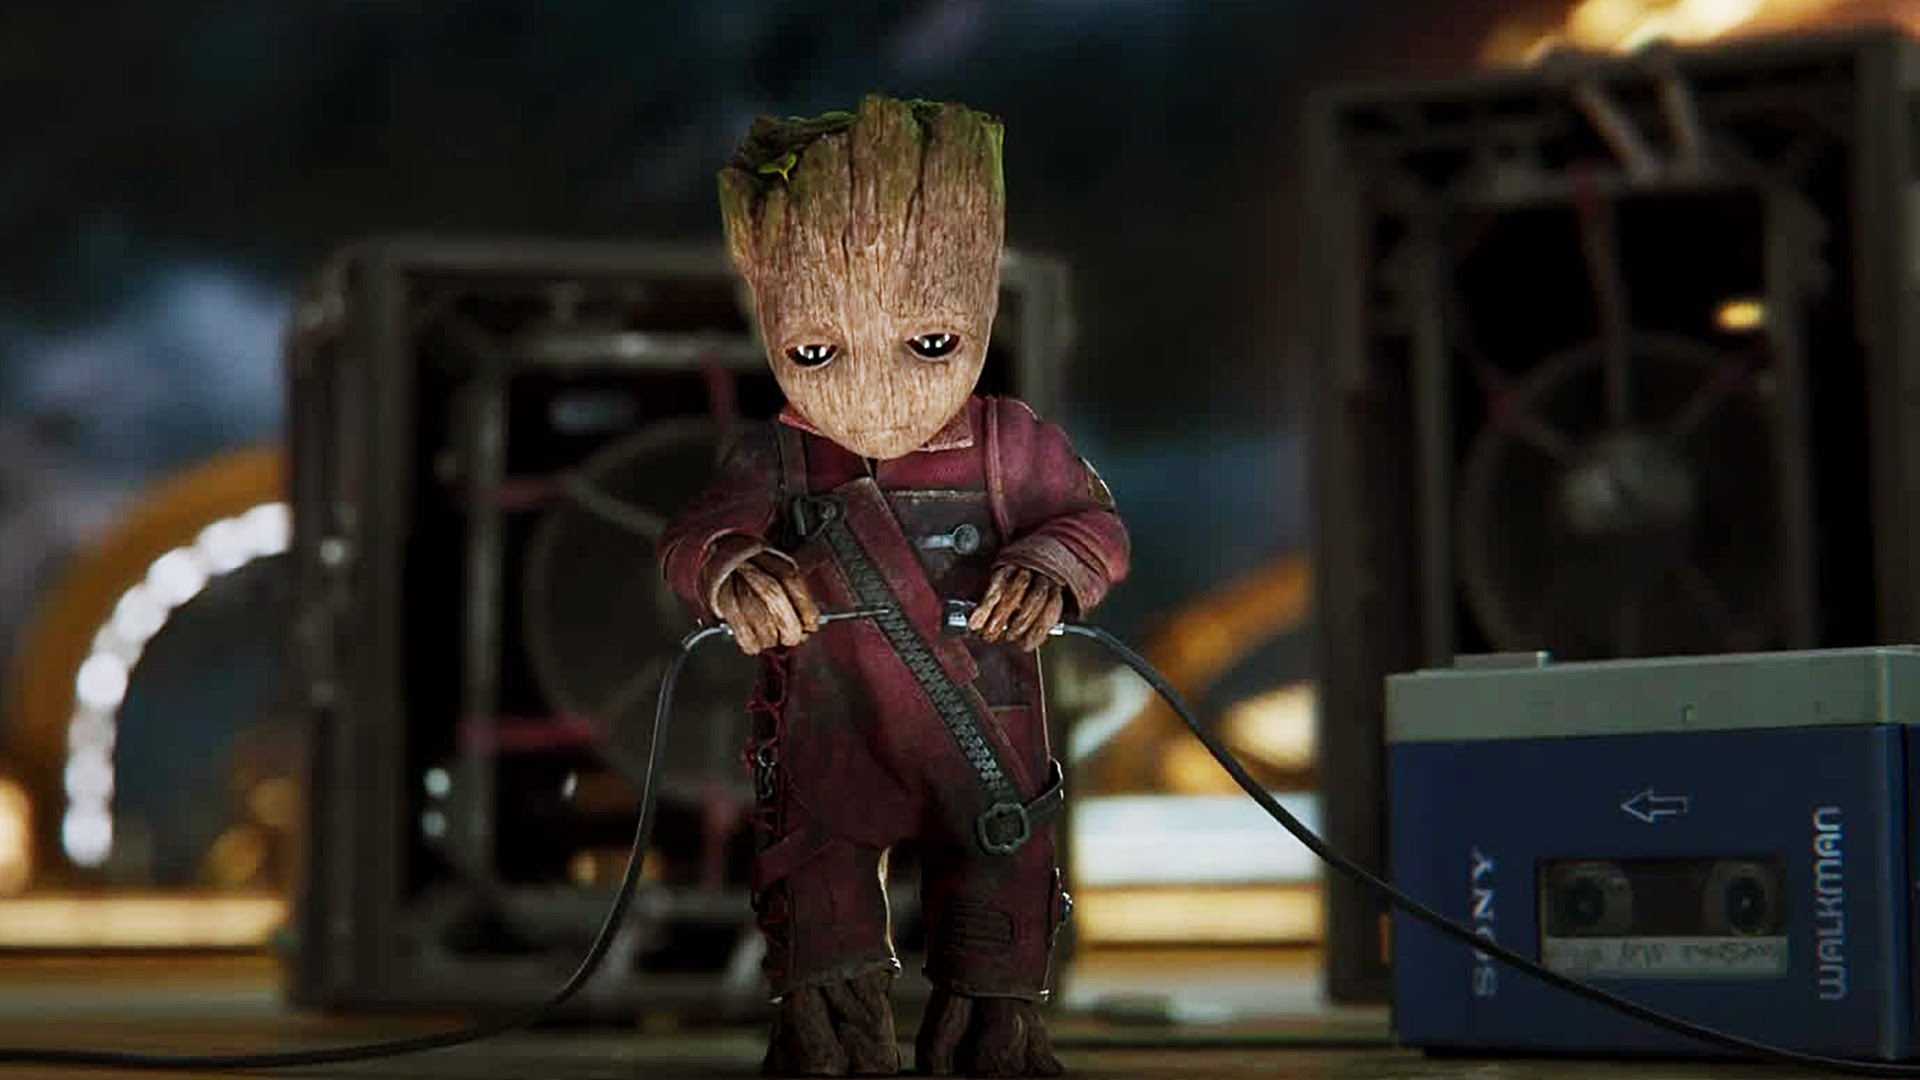 Baby Groot Guardians Of The Galaxy Vol 2 Wallpaper 13720 Baltana